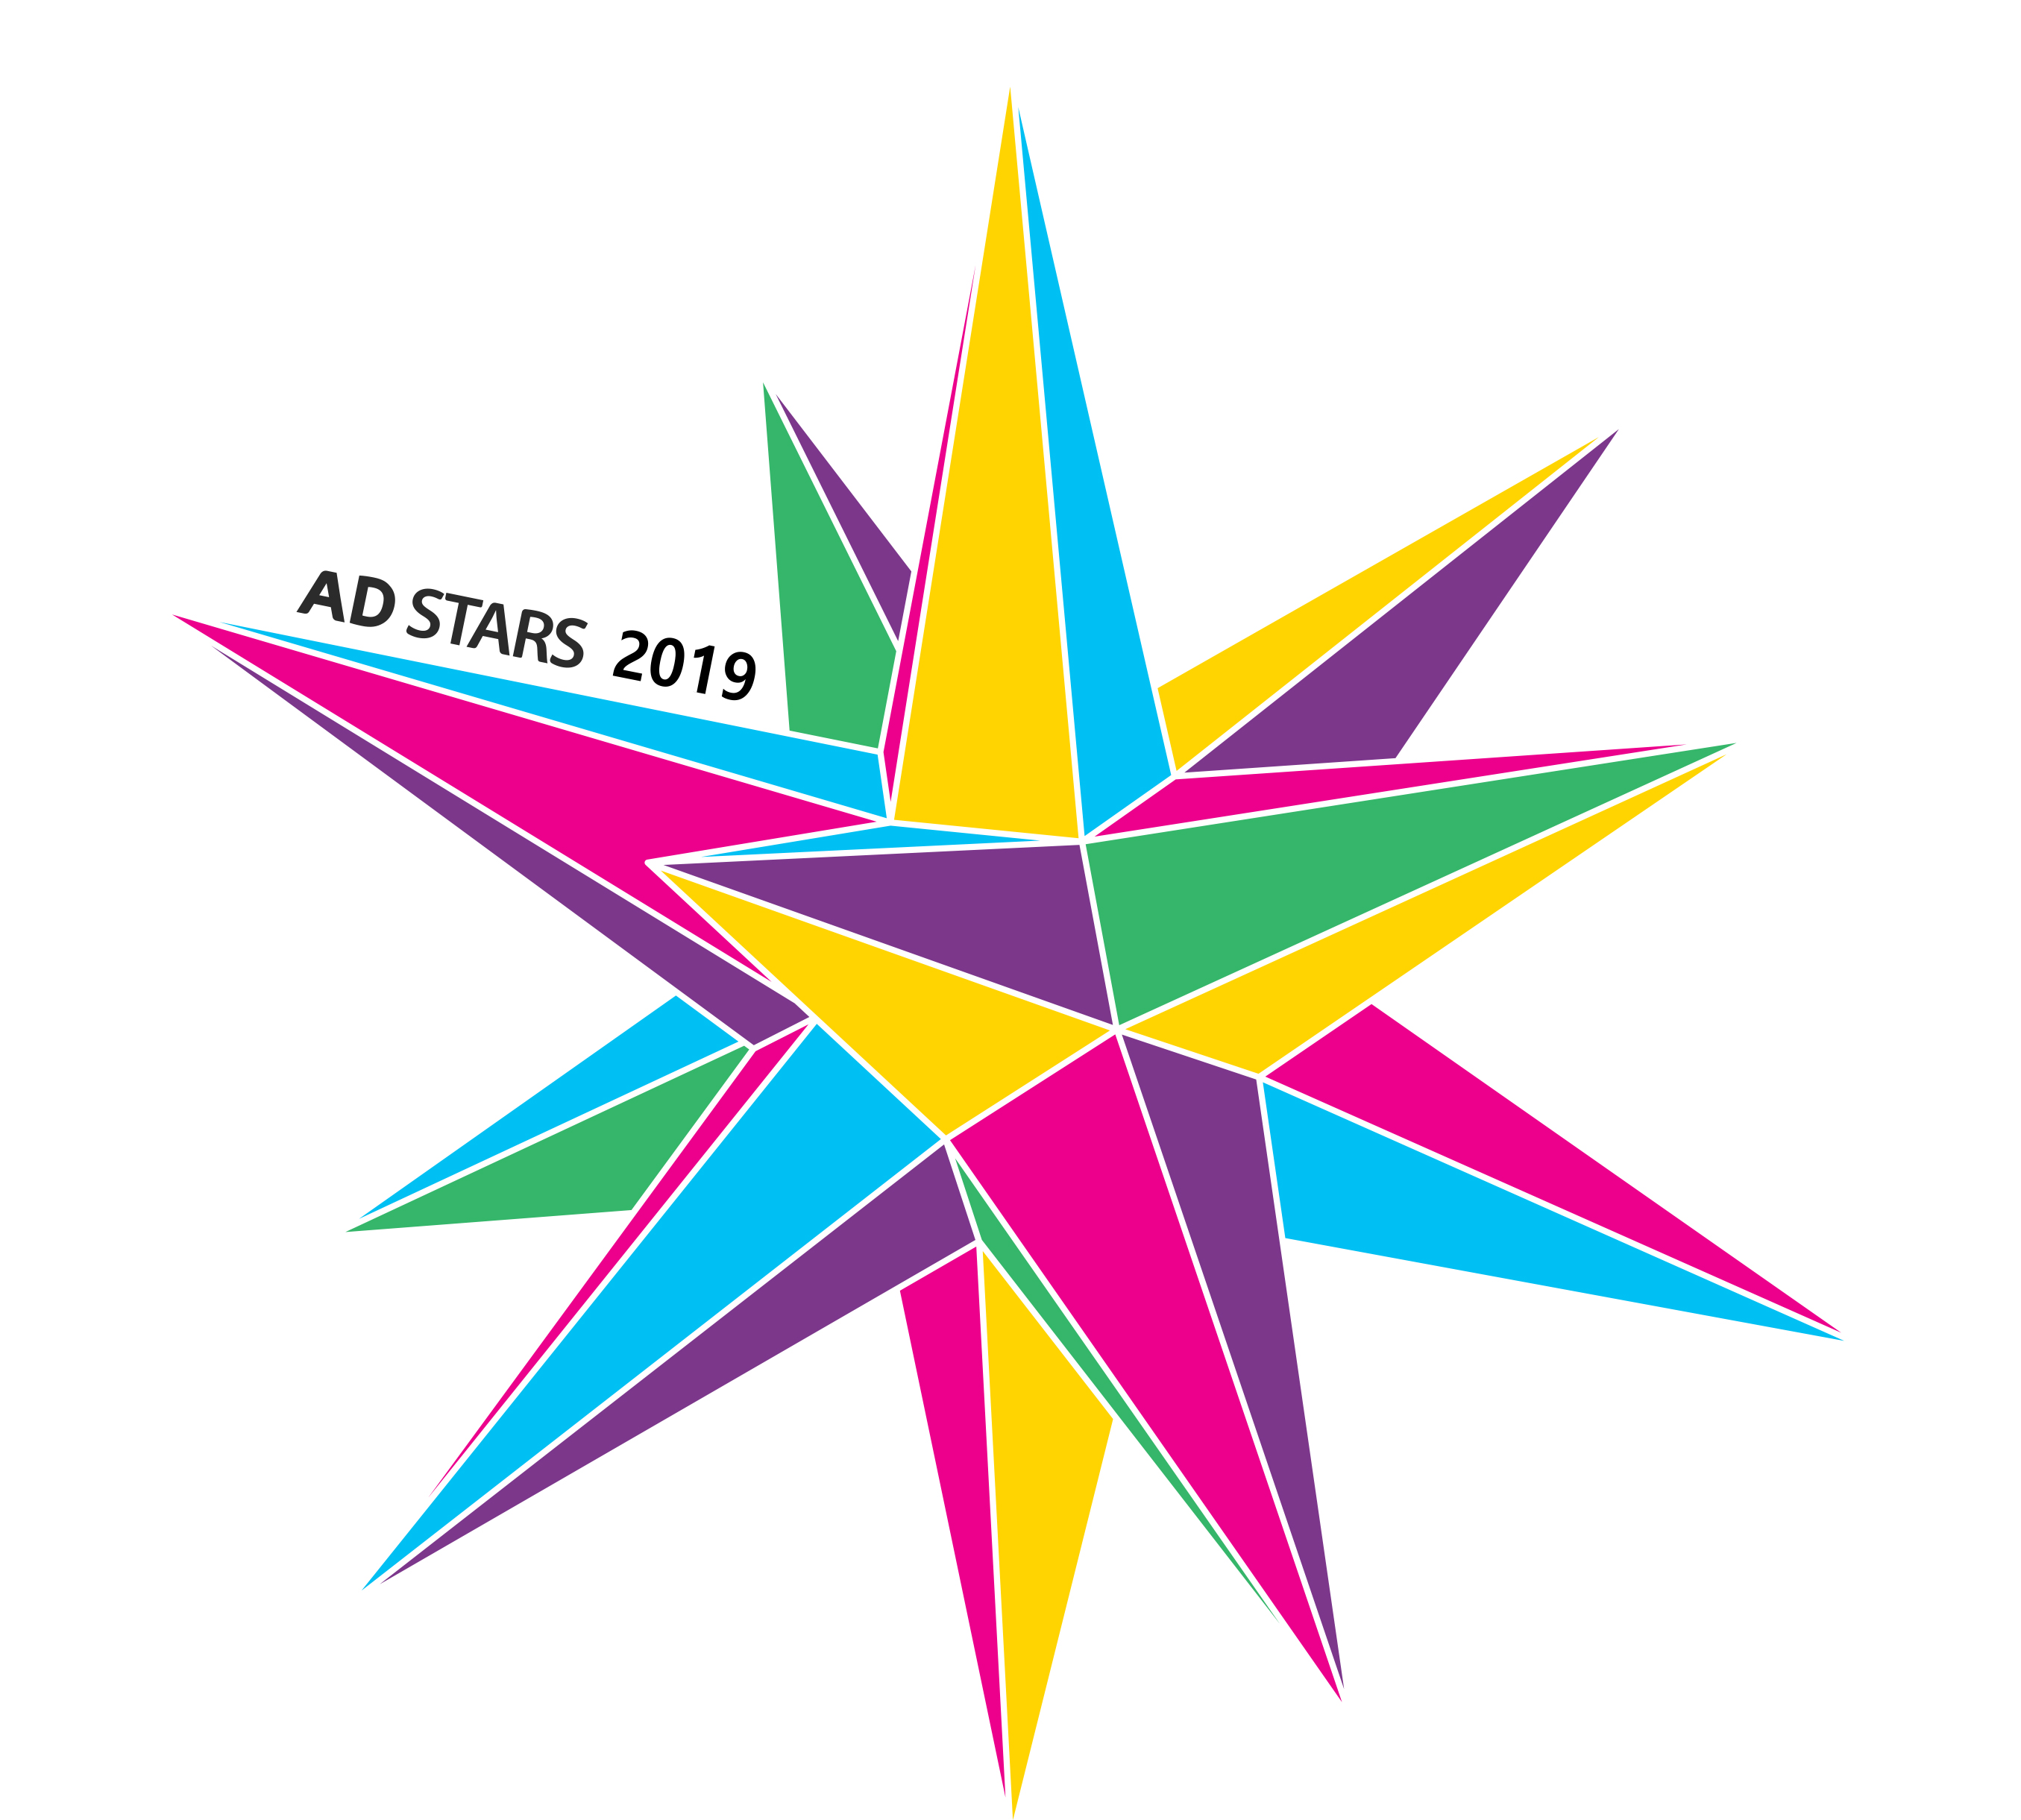 Ad Stars receives over 20,600 entries